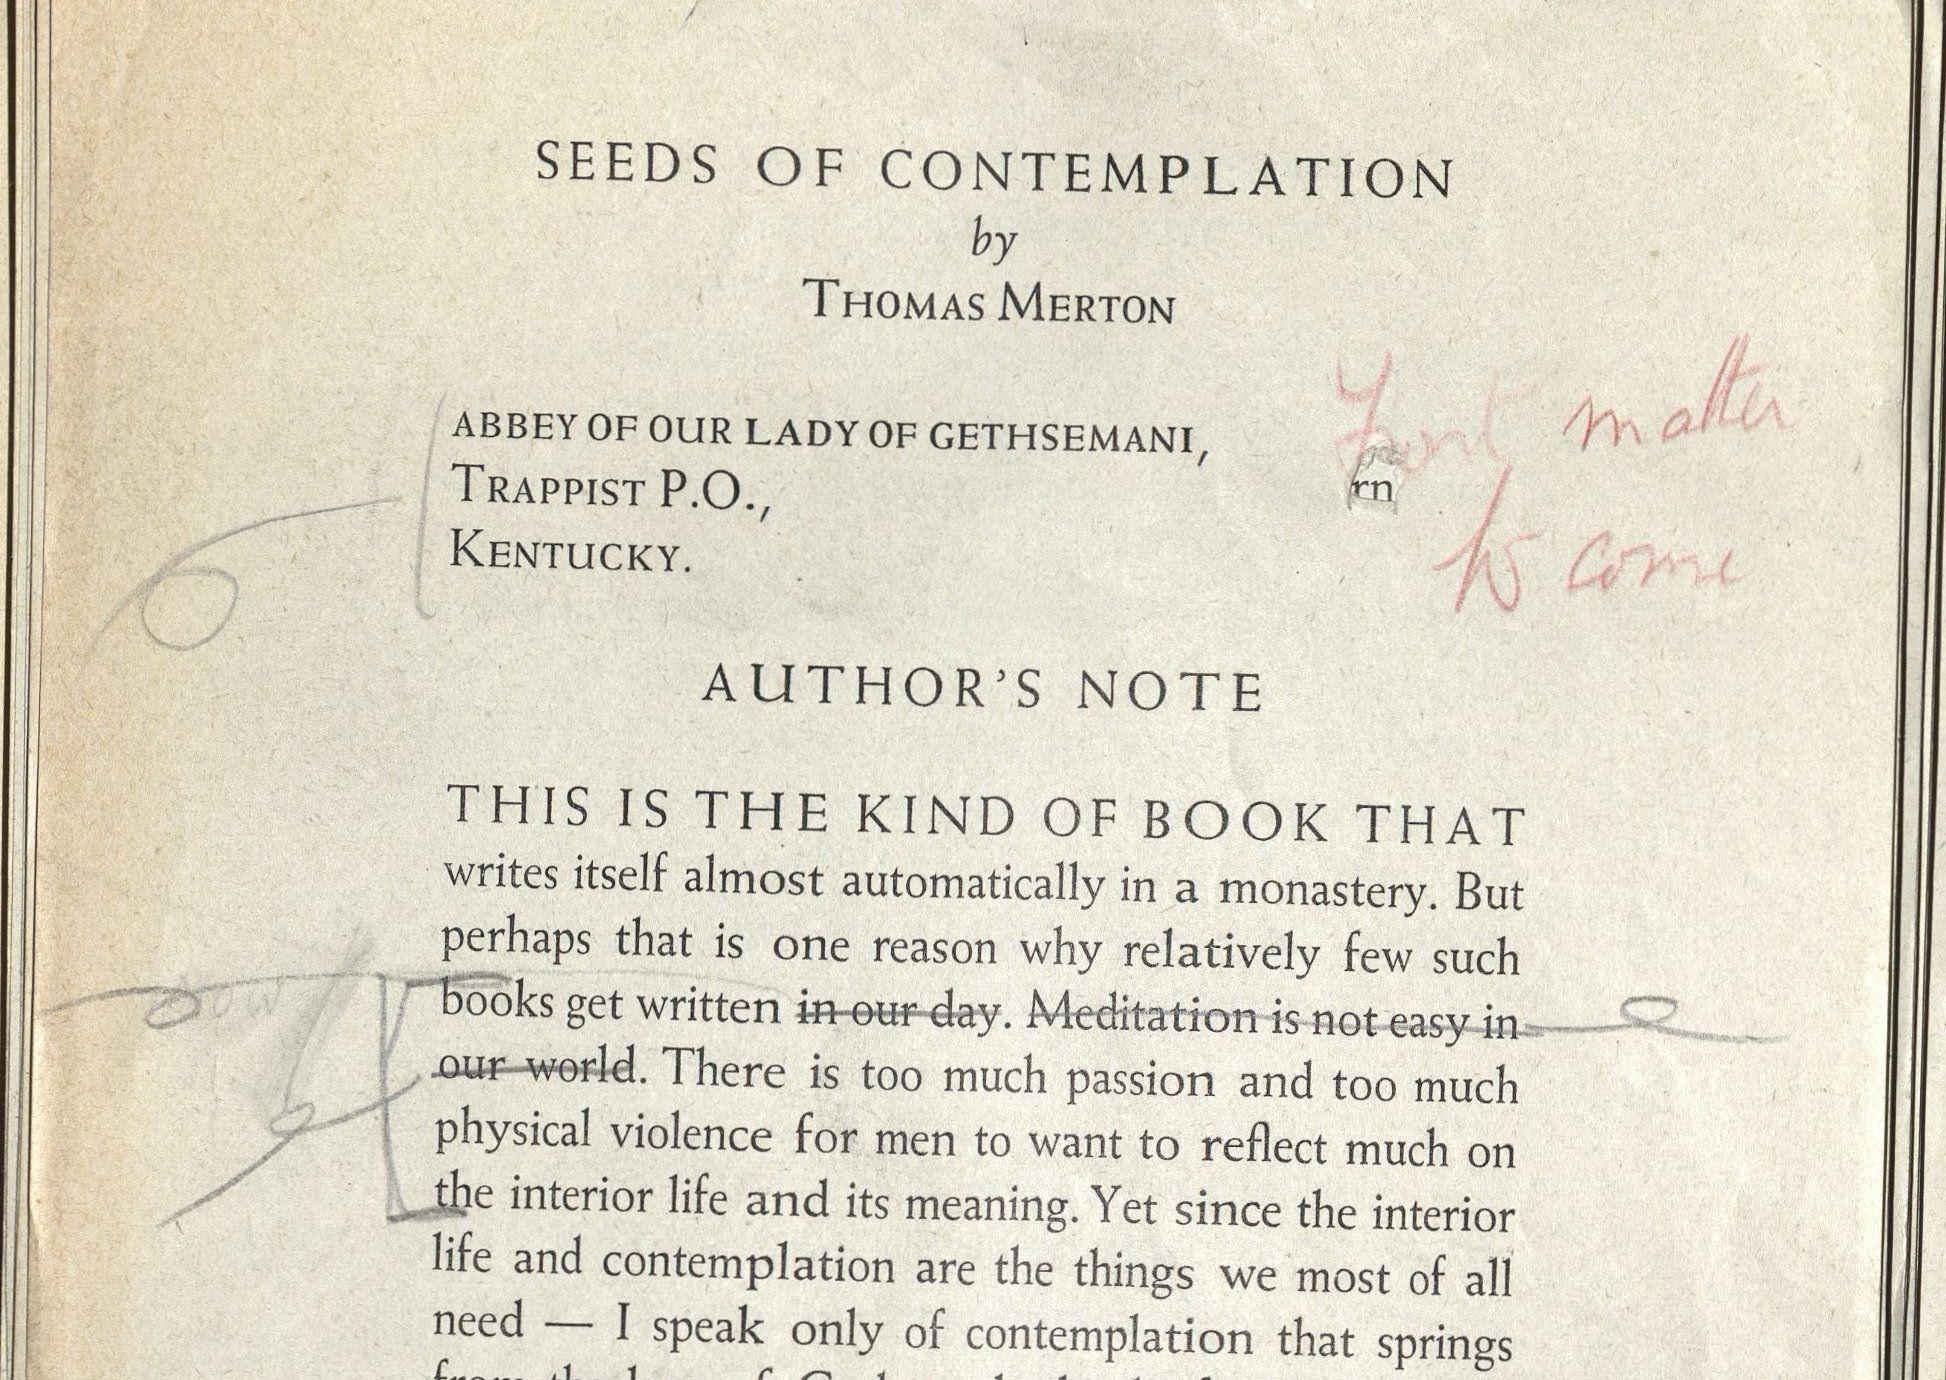 Image of galley proof for Seeds of Contemplation with author's annotations.